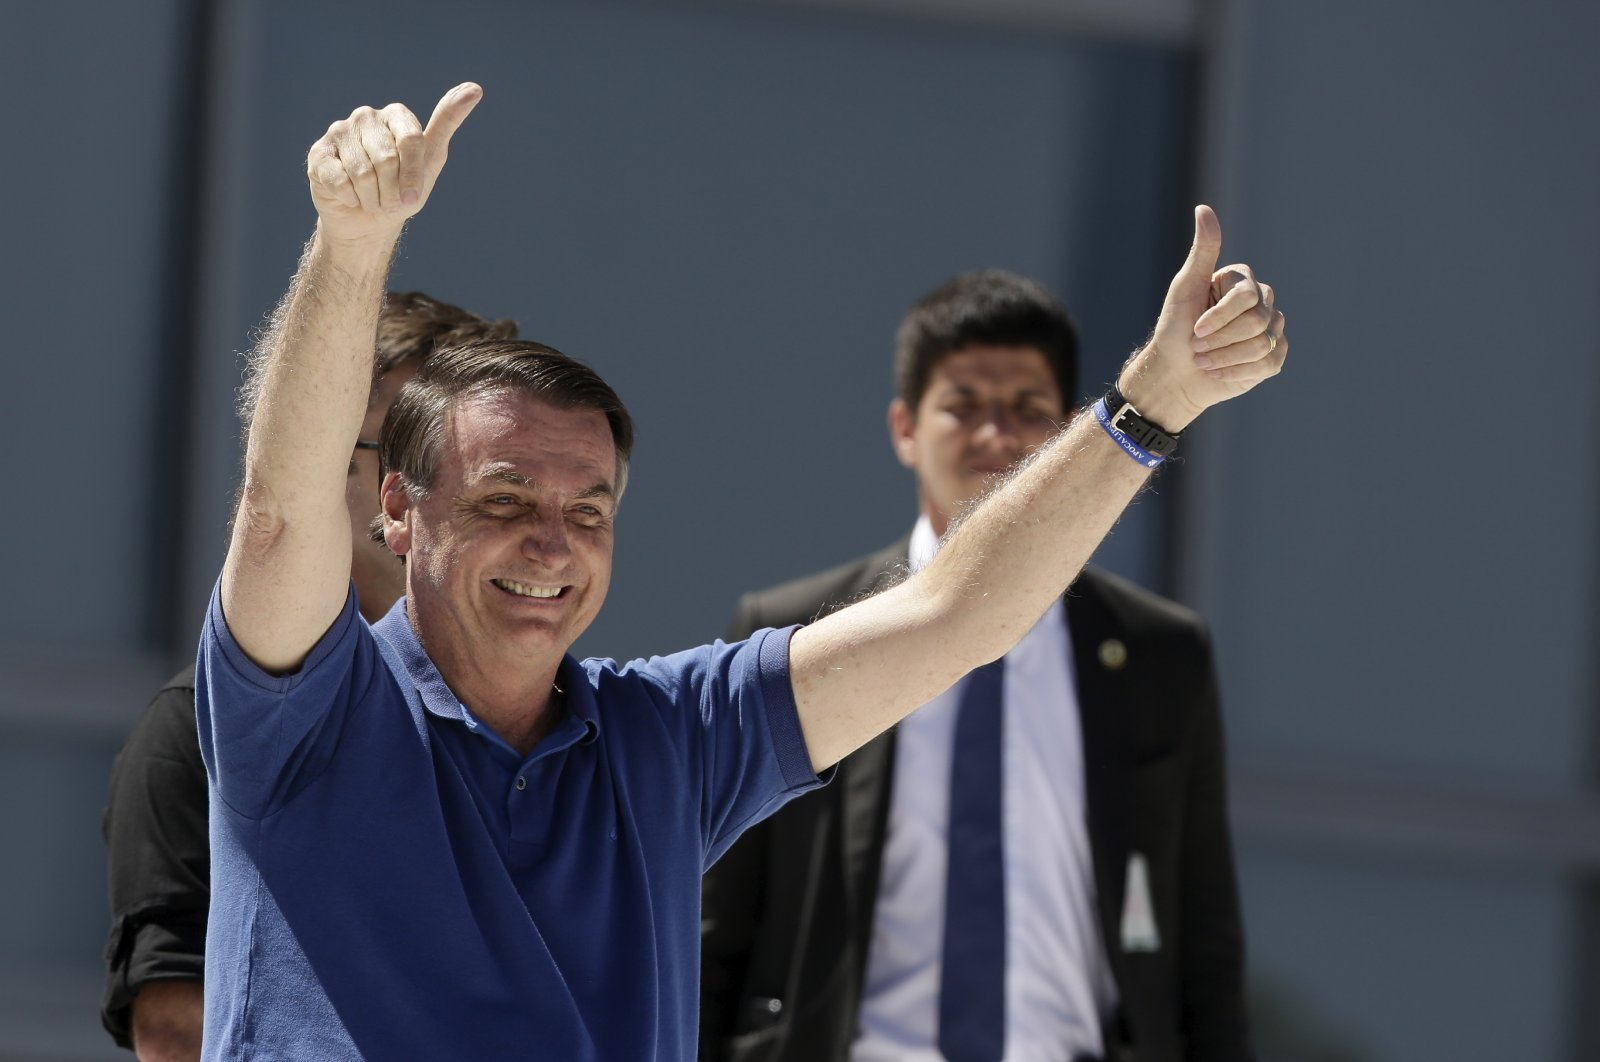 Brazil's President Jair Bolsonaro signals thumbs up to his supporters during a protest against his former Minister of Justice Sergio Moro and the Supreme Court, in front of the Planalto presidential palace, in Brasilia, Brazil, Sunday, May 3, 2020. (AP Photo)